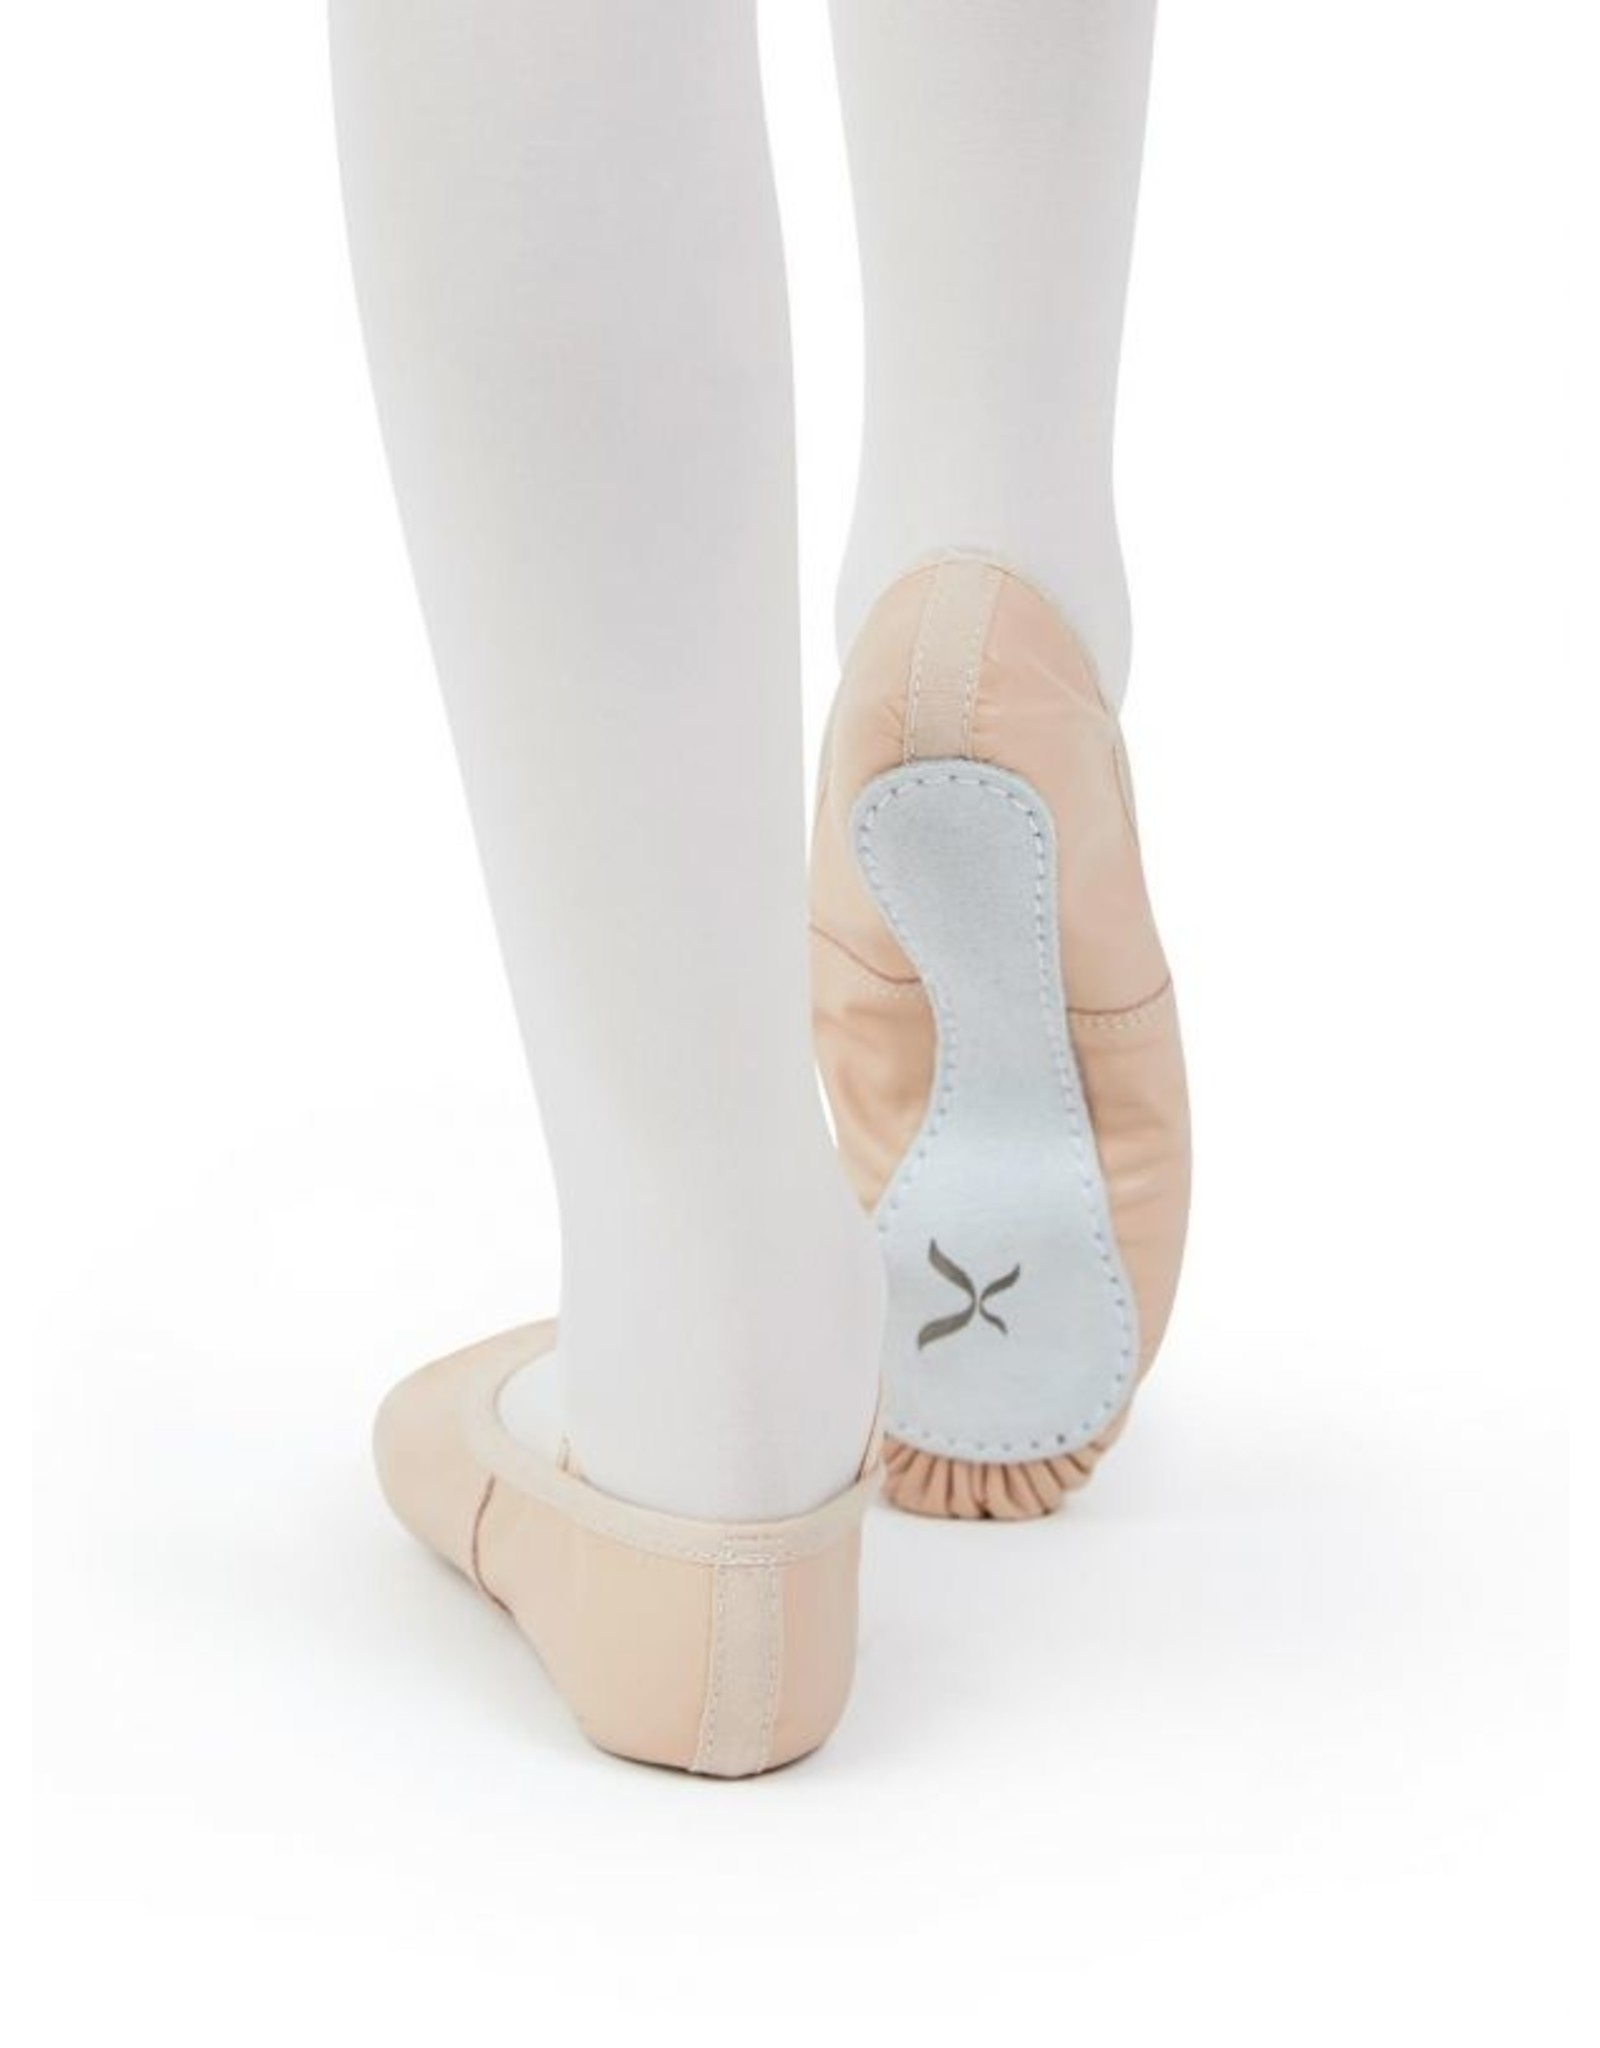 CAPEZIO DAISY LEATHER FULL SOLE SLIPPER - TODDLER SIZES